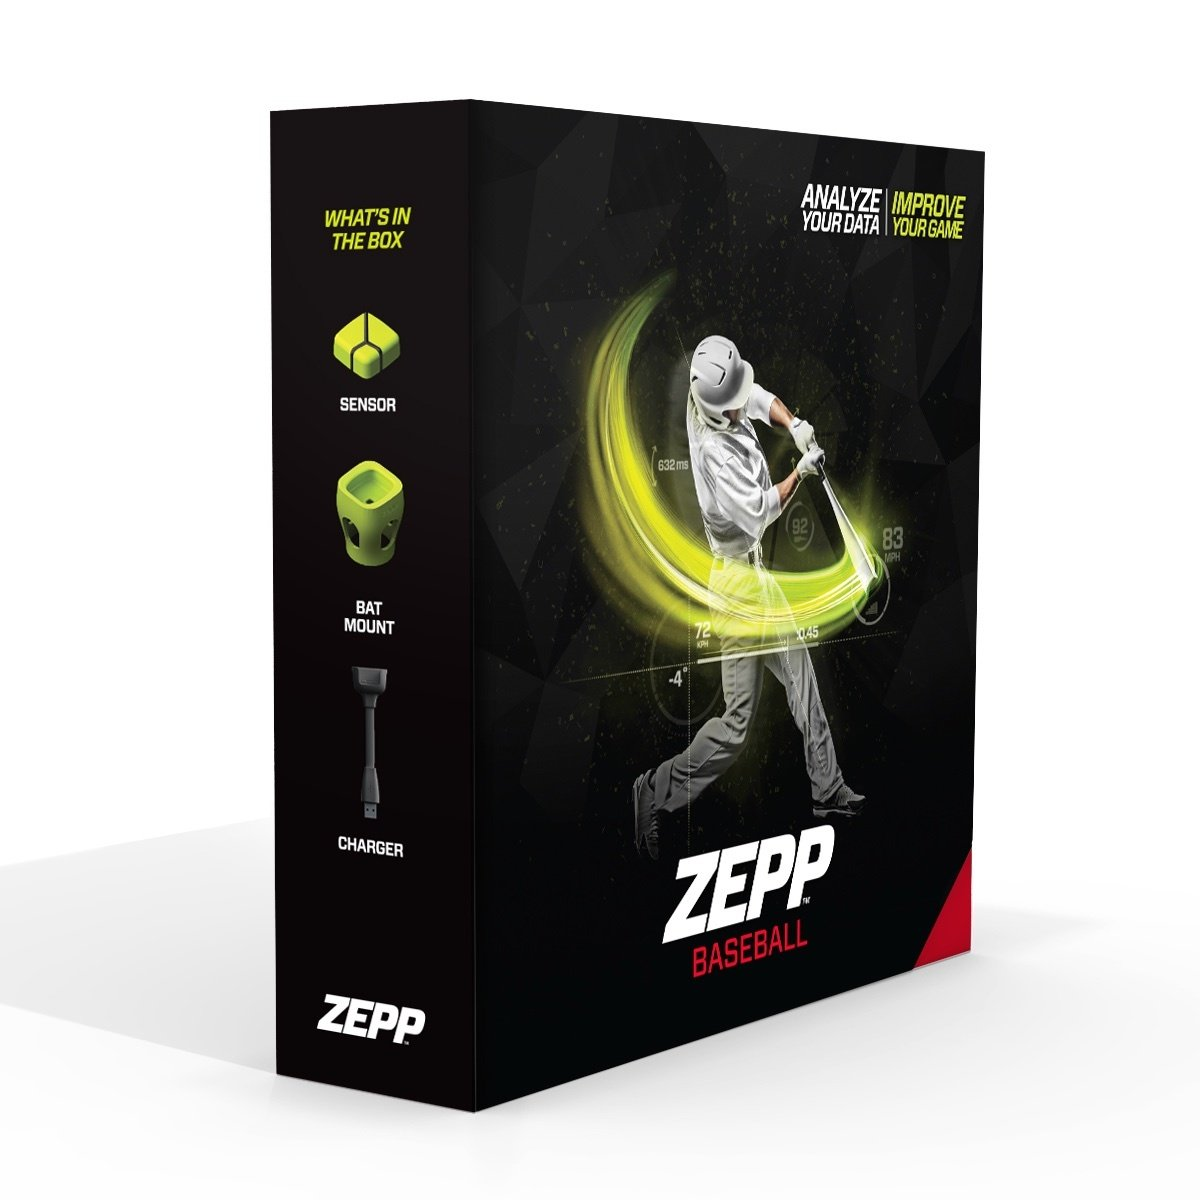 Zepp Bluetooth 3D Baseball Swing Analyser for iPhone/iPad/Android by Zepp by Zepp